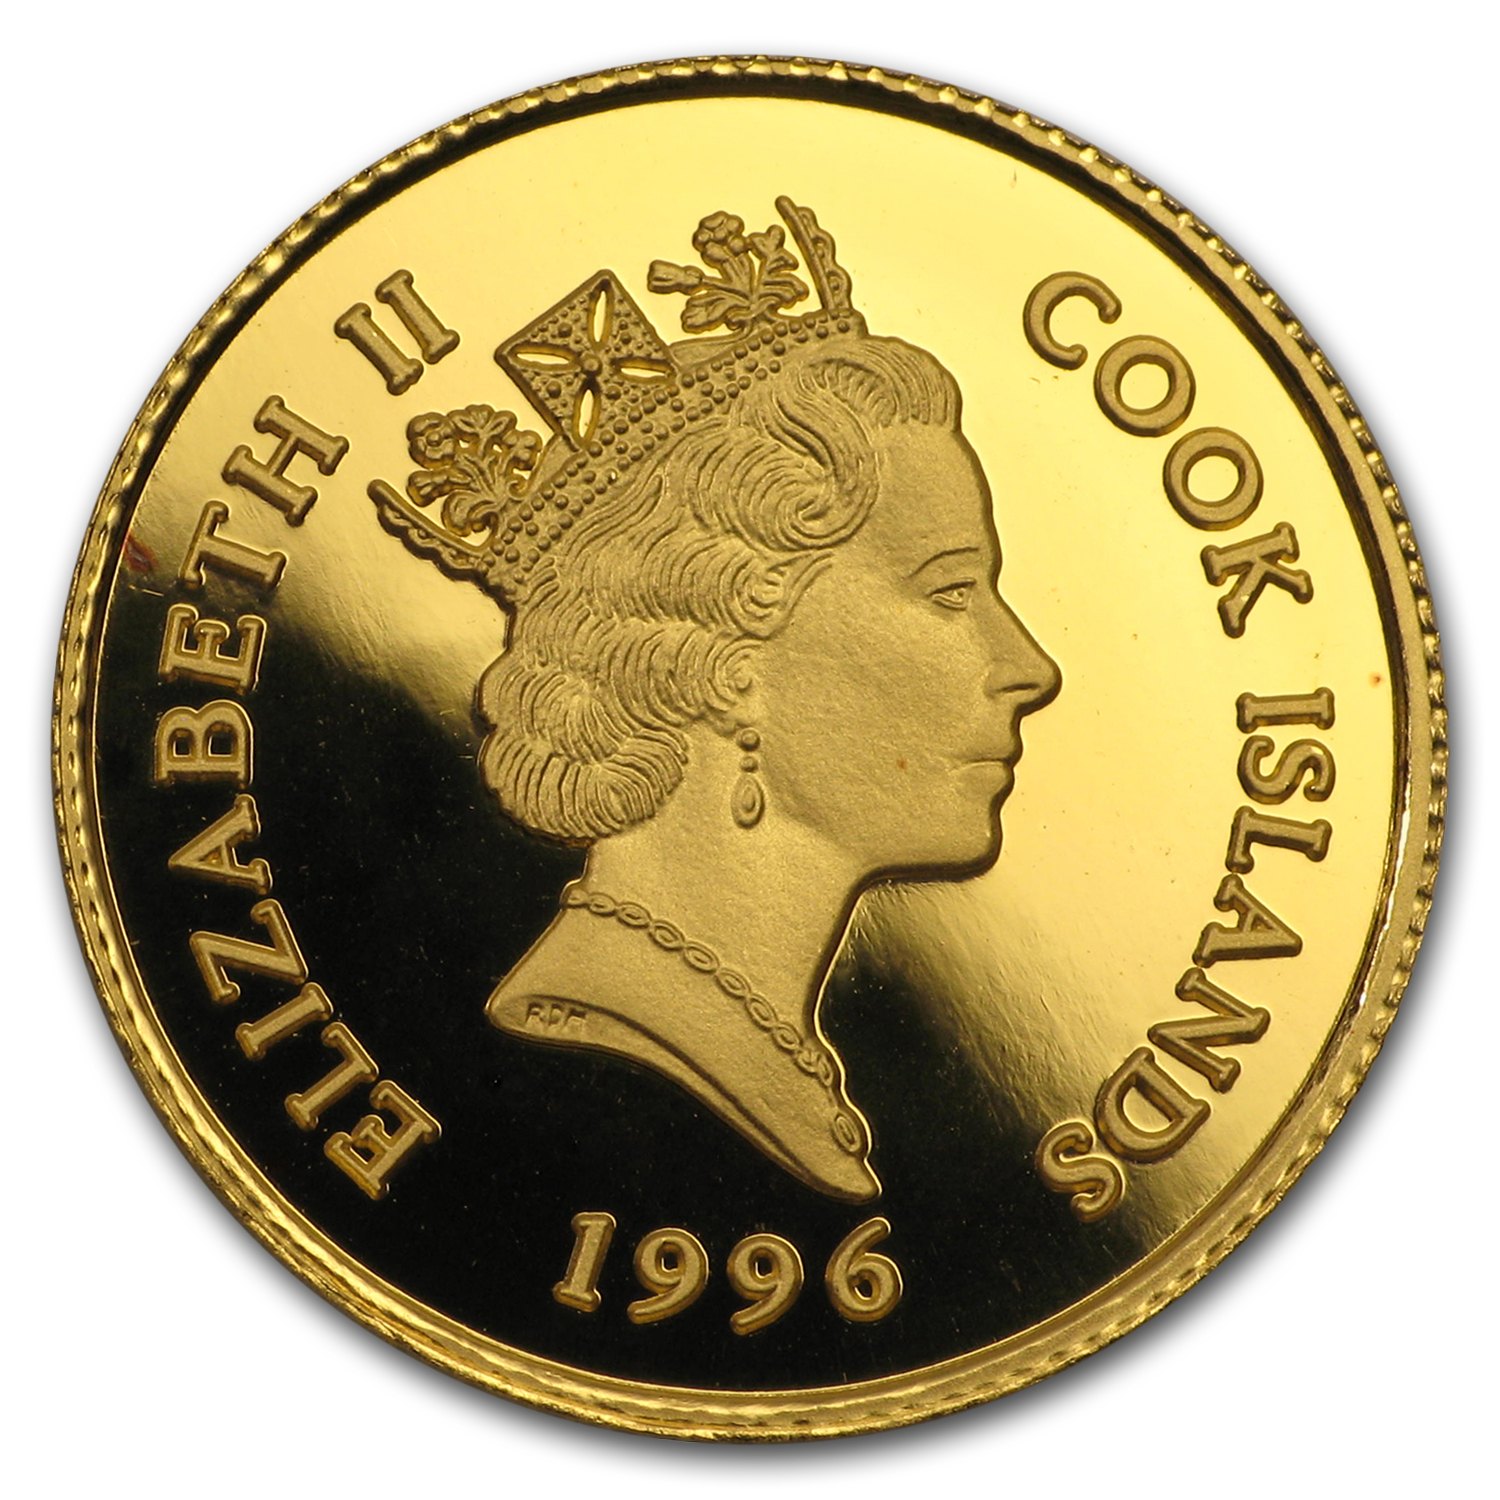 Cook Islands 1996 25 Dollar Gold AGW 0.10